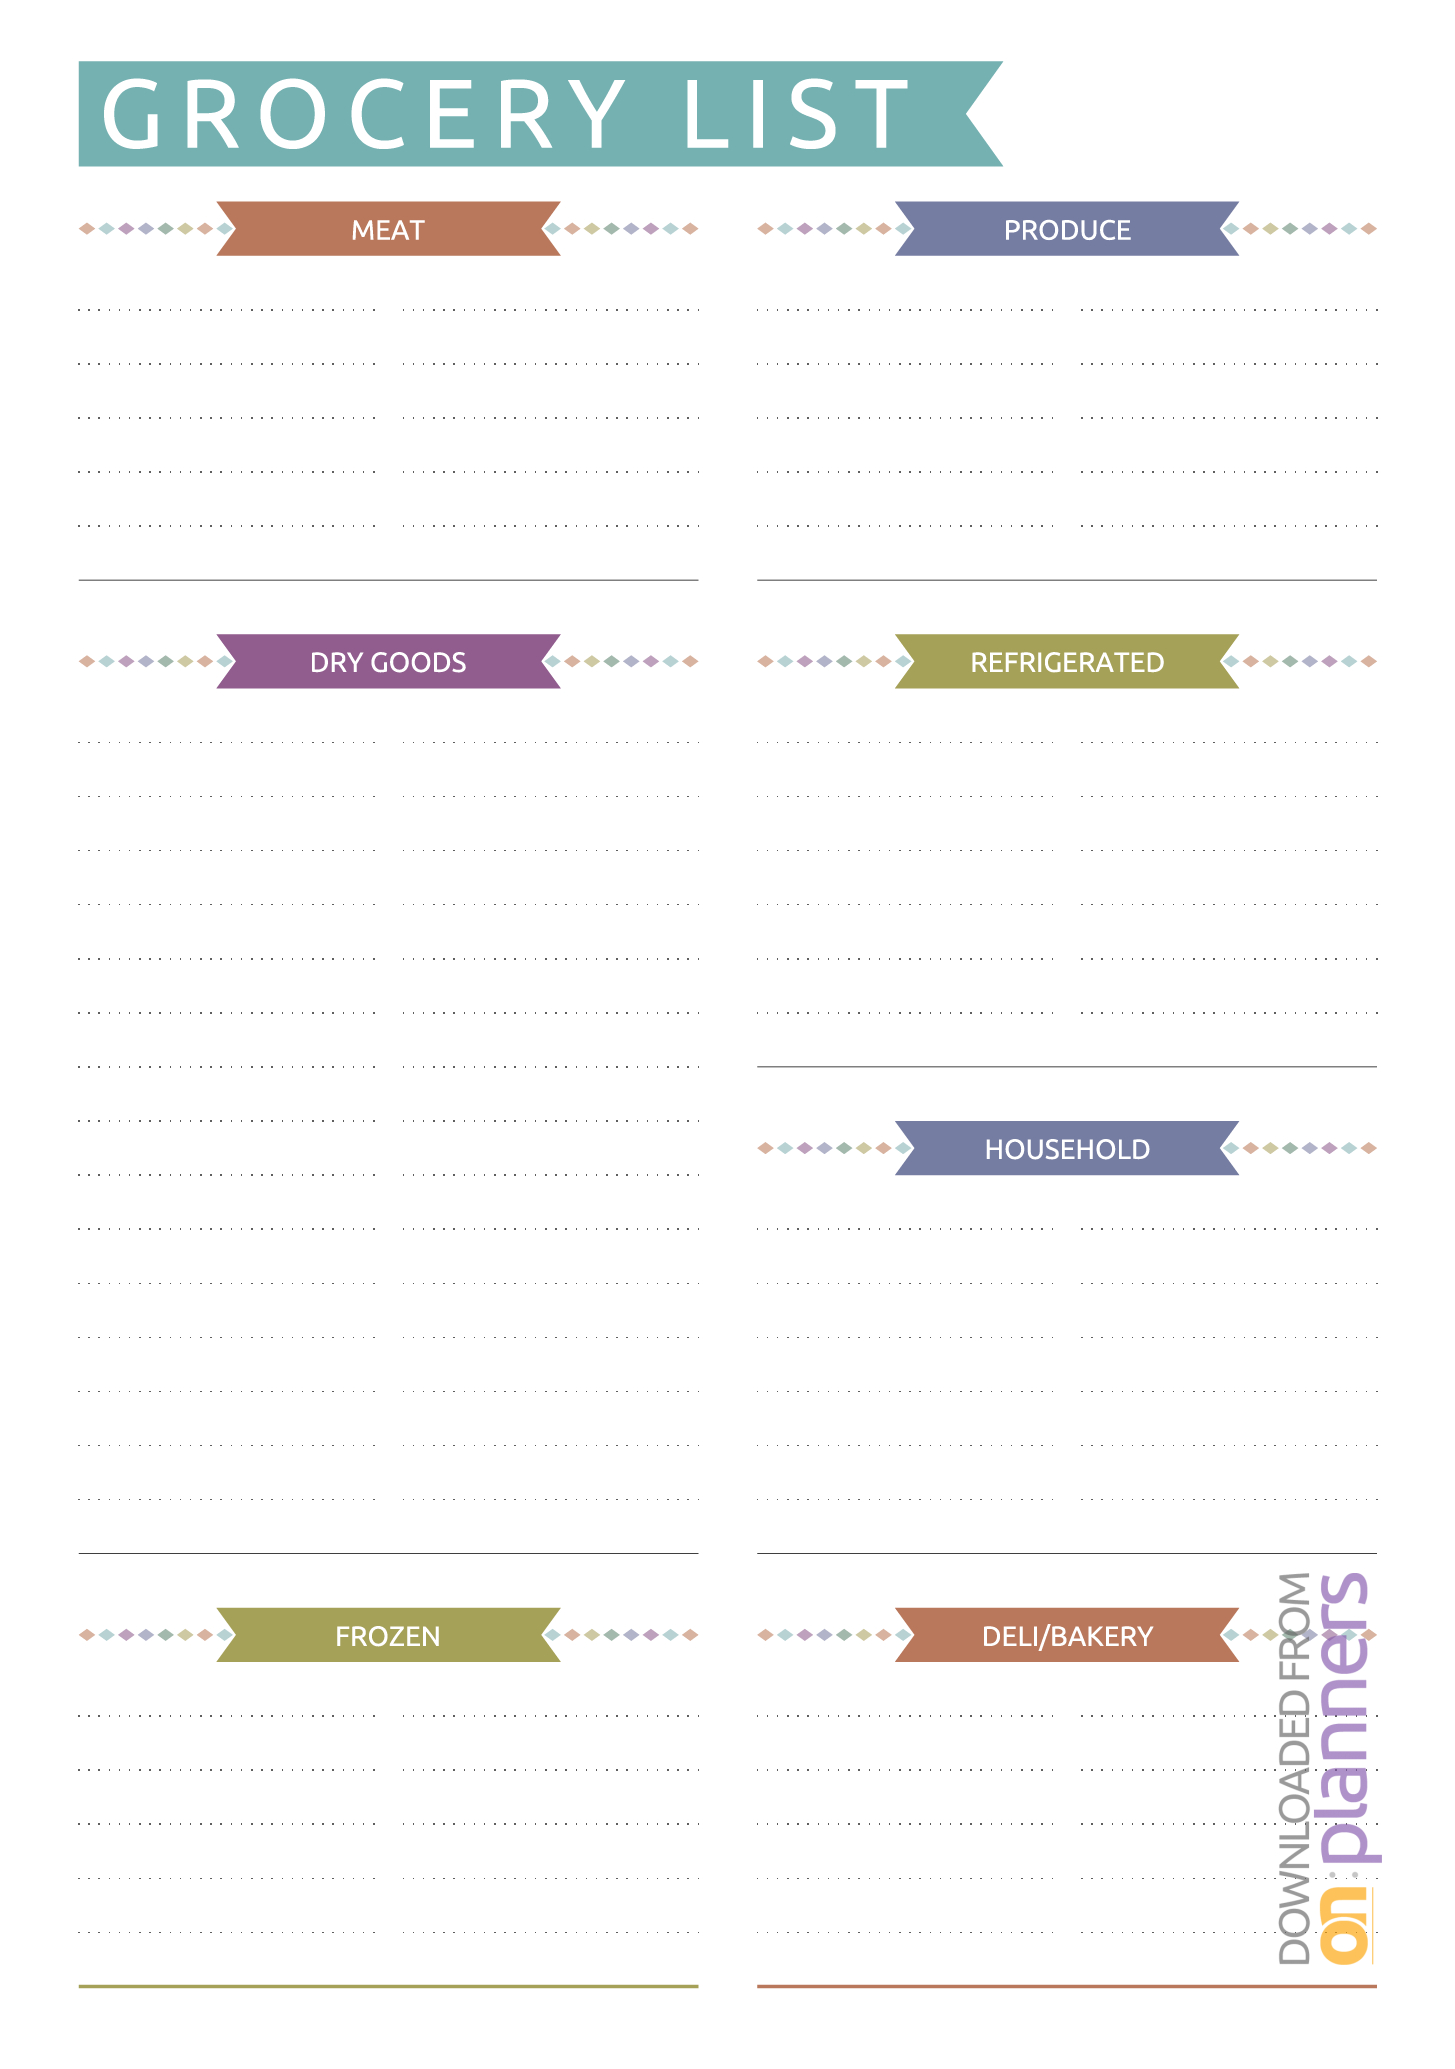 Grocery List Template Printable Pdf Editable Excel Shopping inside Editable Grocery List